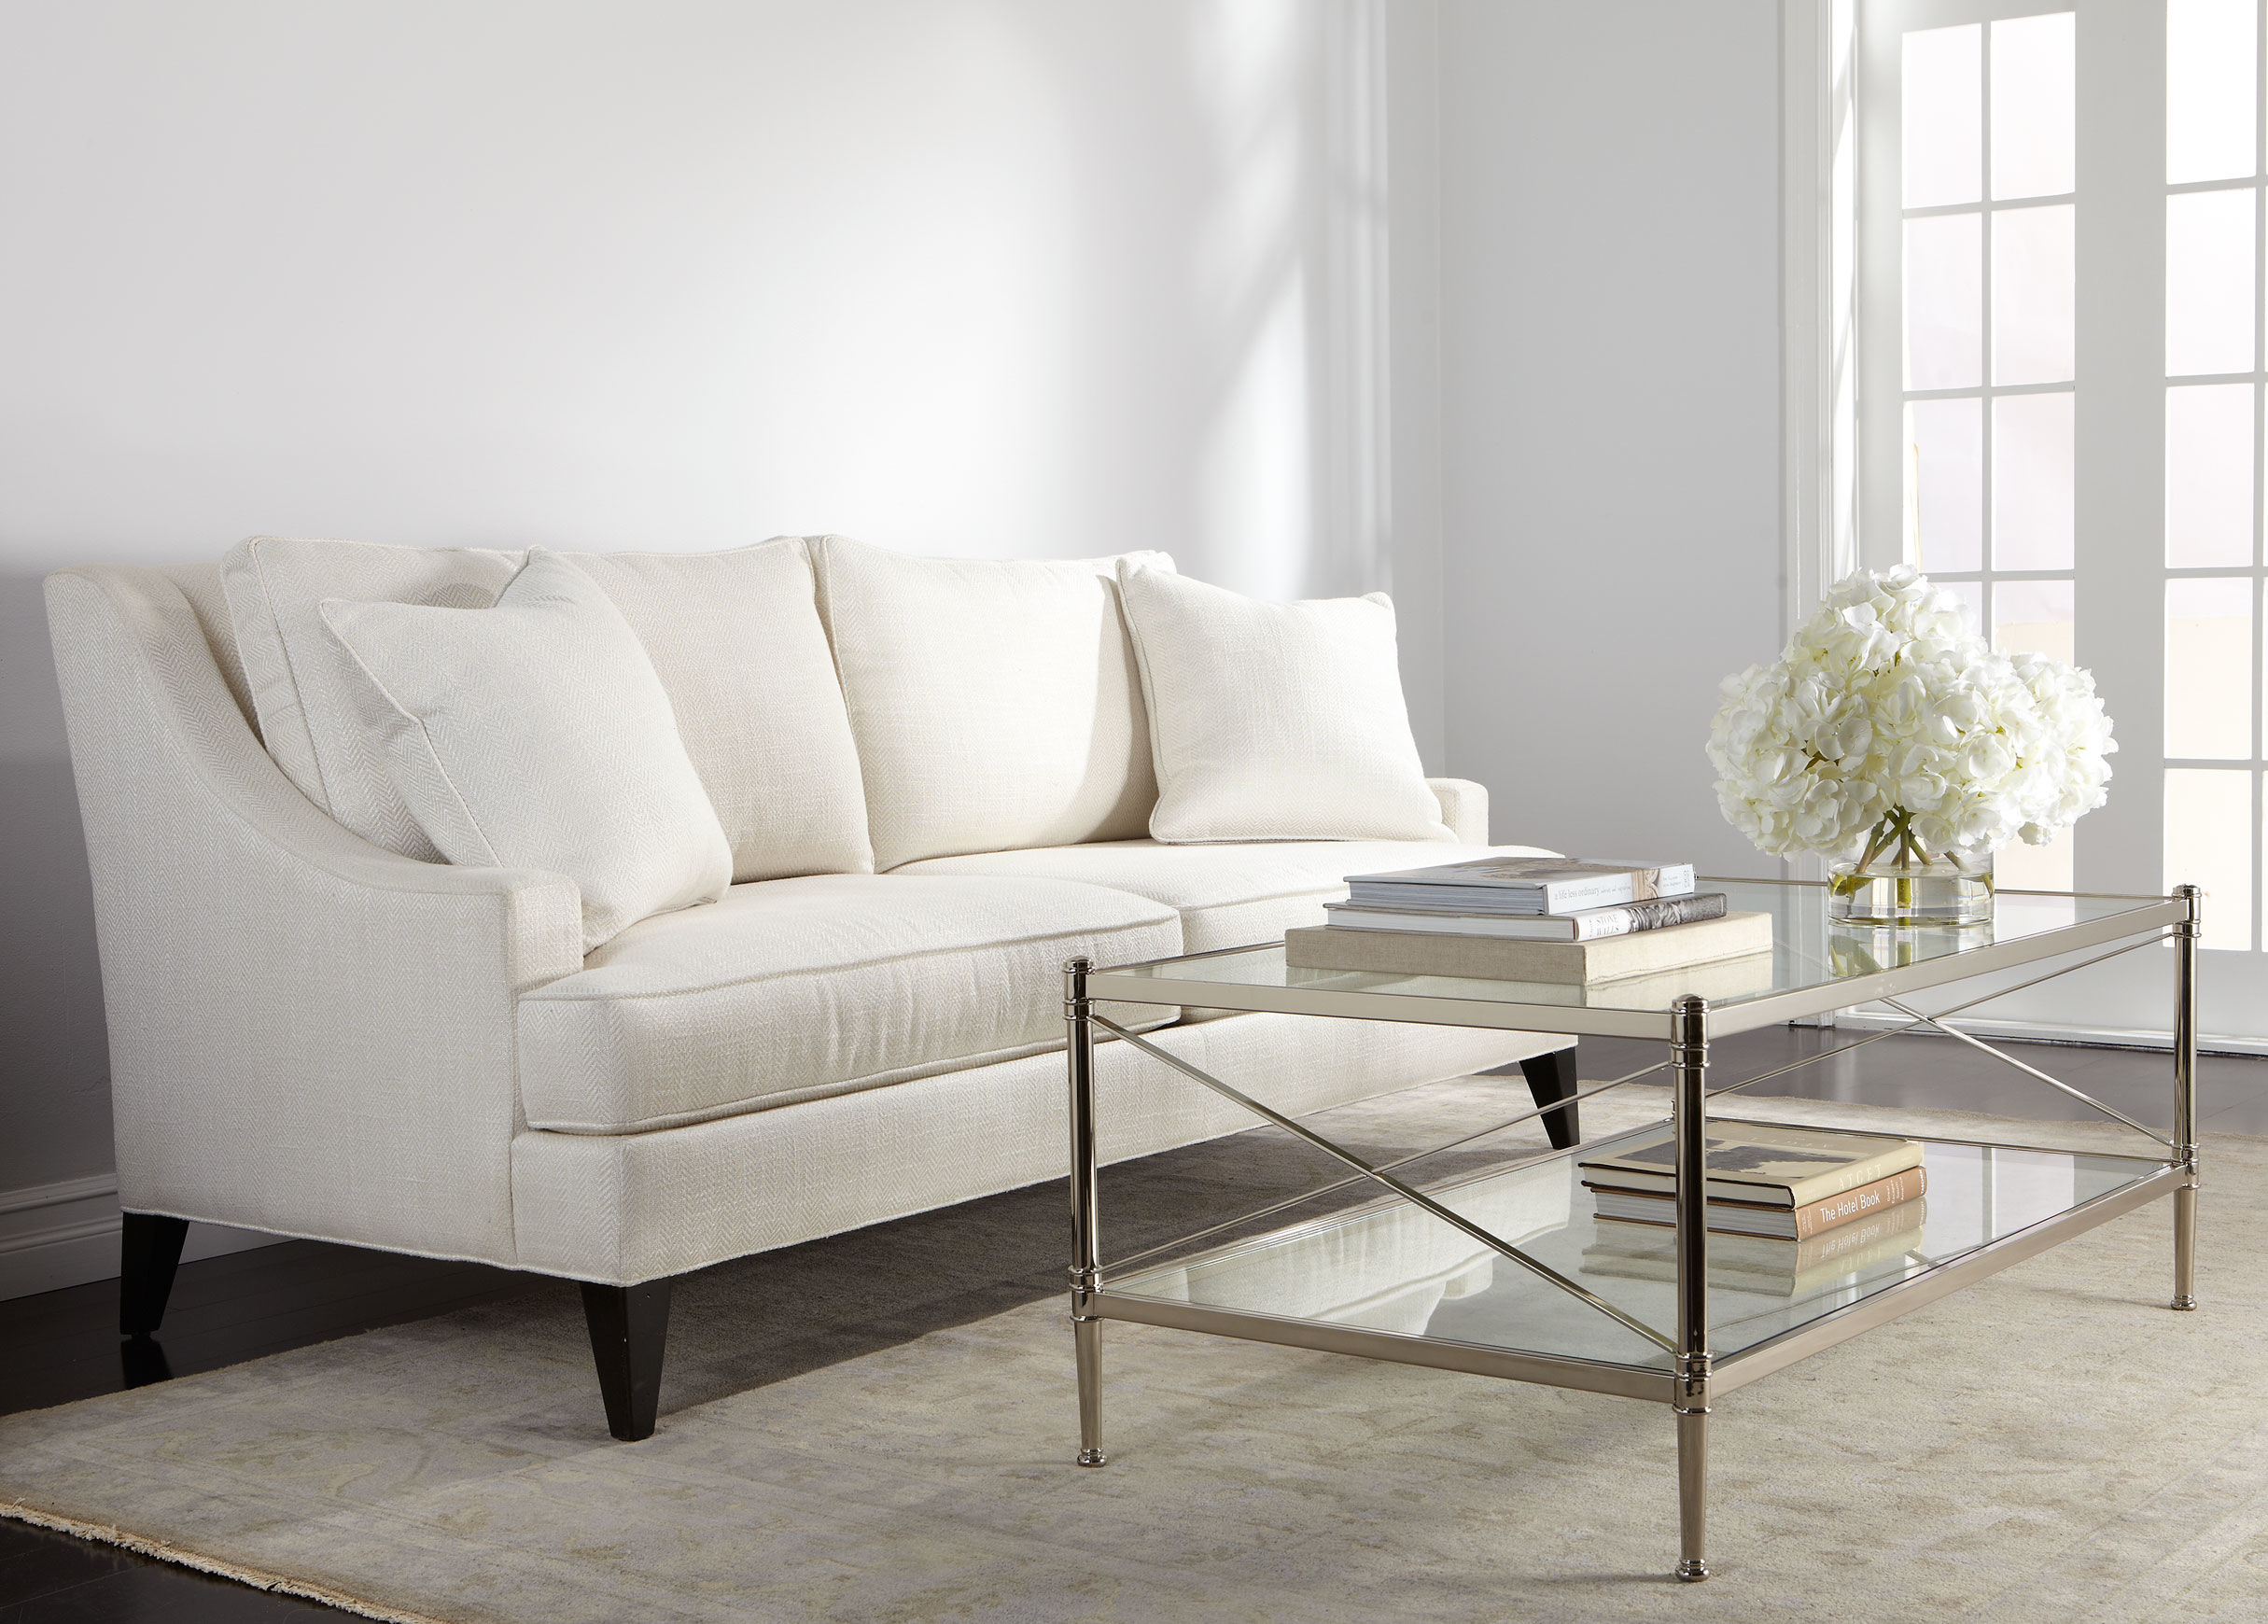 Elegant White Ethan Allen Sleeper Sofas With Pillows And Glass Coffe Table  Plus Large Rug